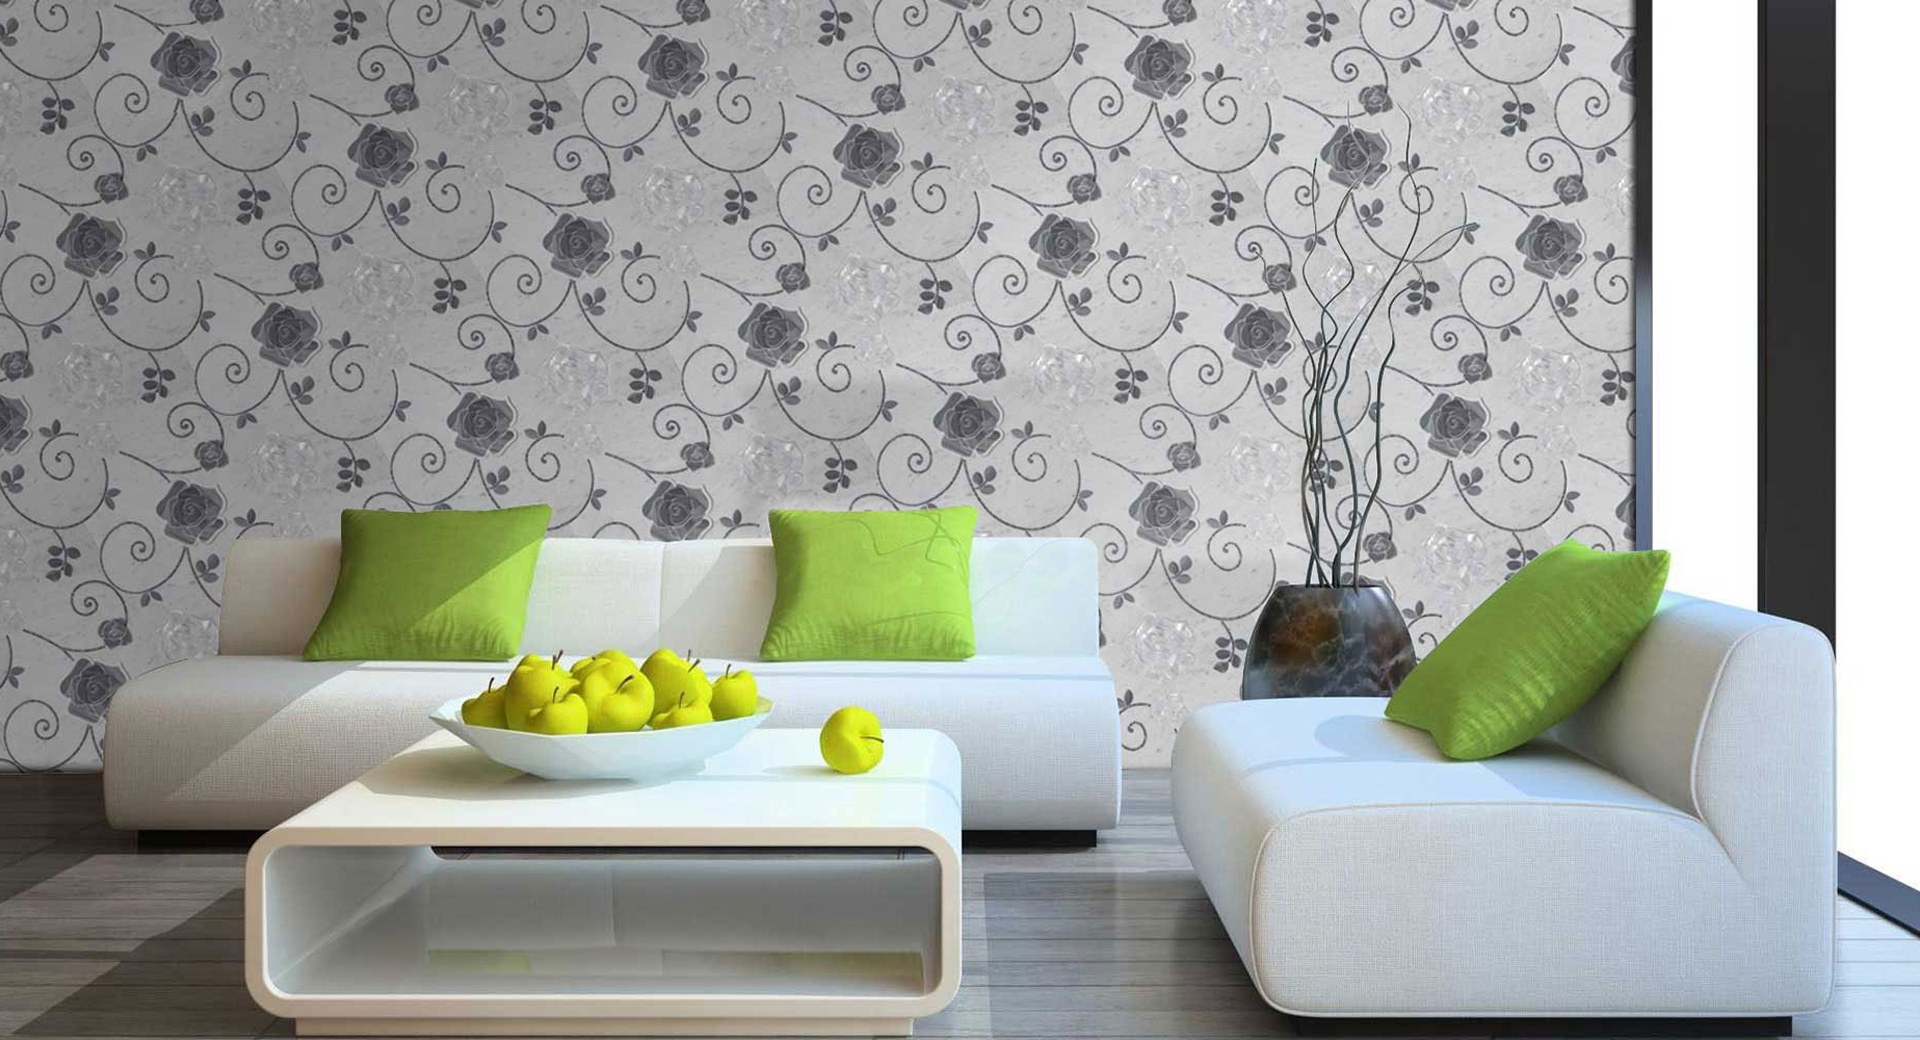 Beautiful wall painting designs for living room as artistic styl